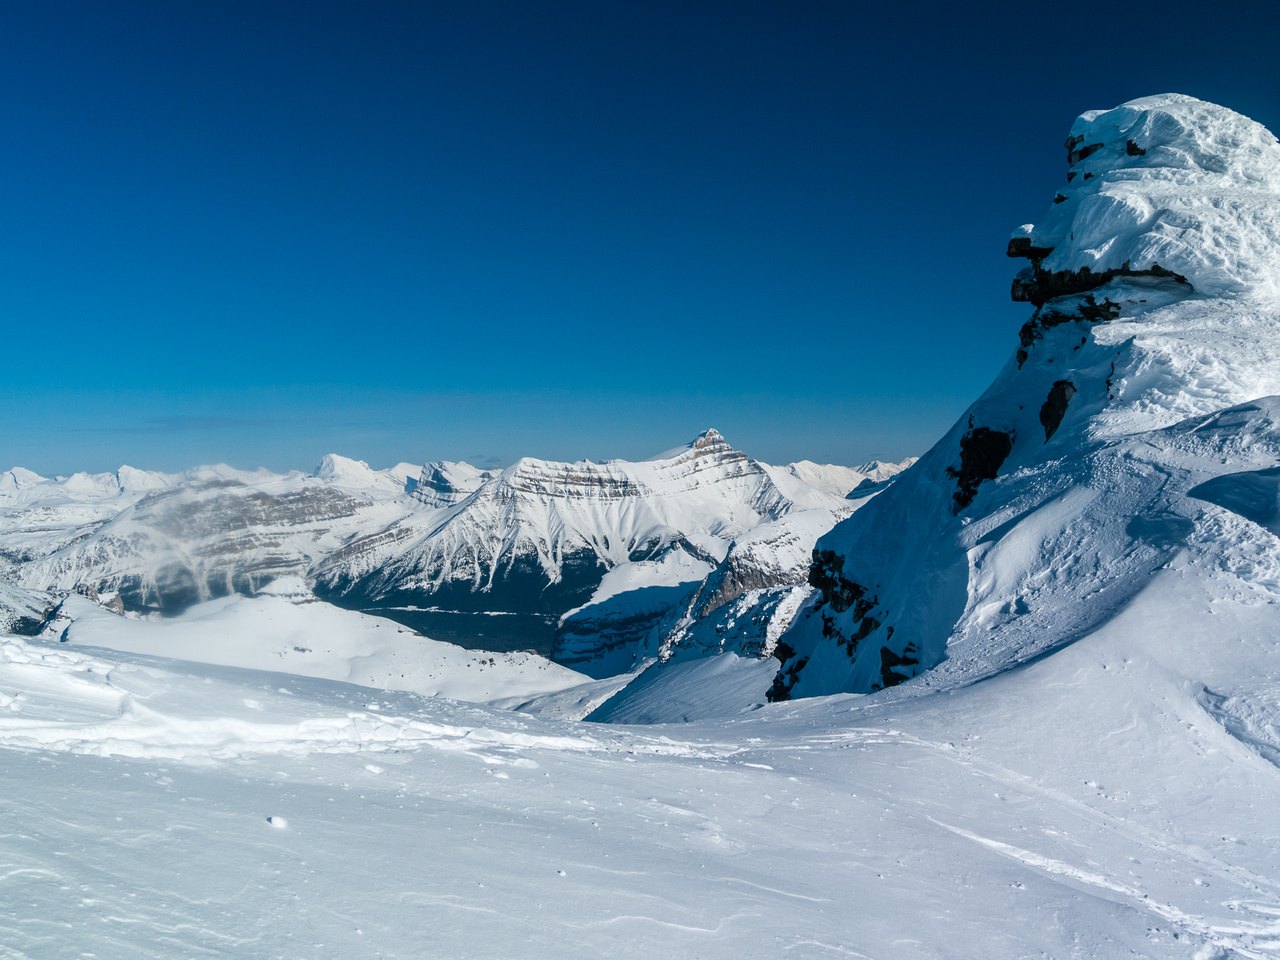 Just before dropping down on skis, looking over the high col.